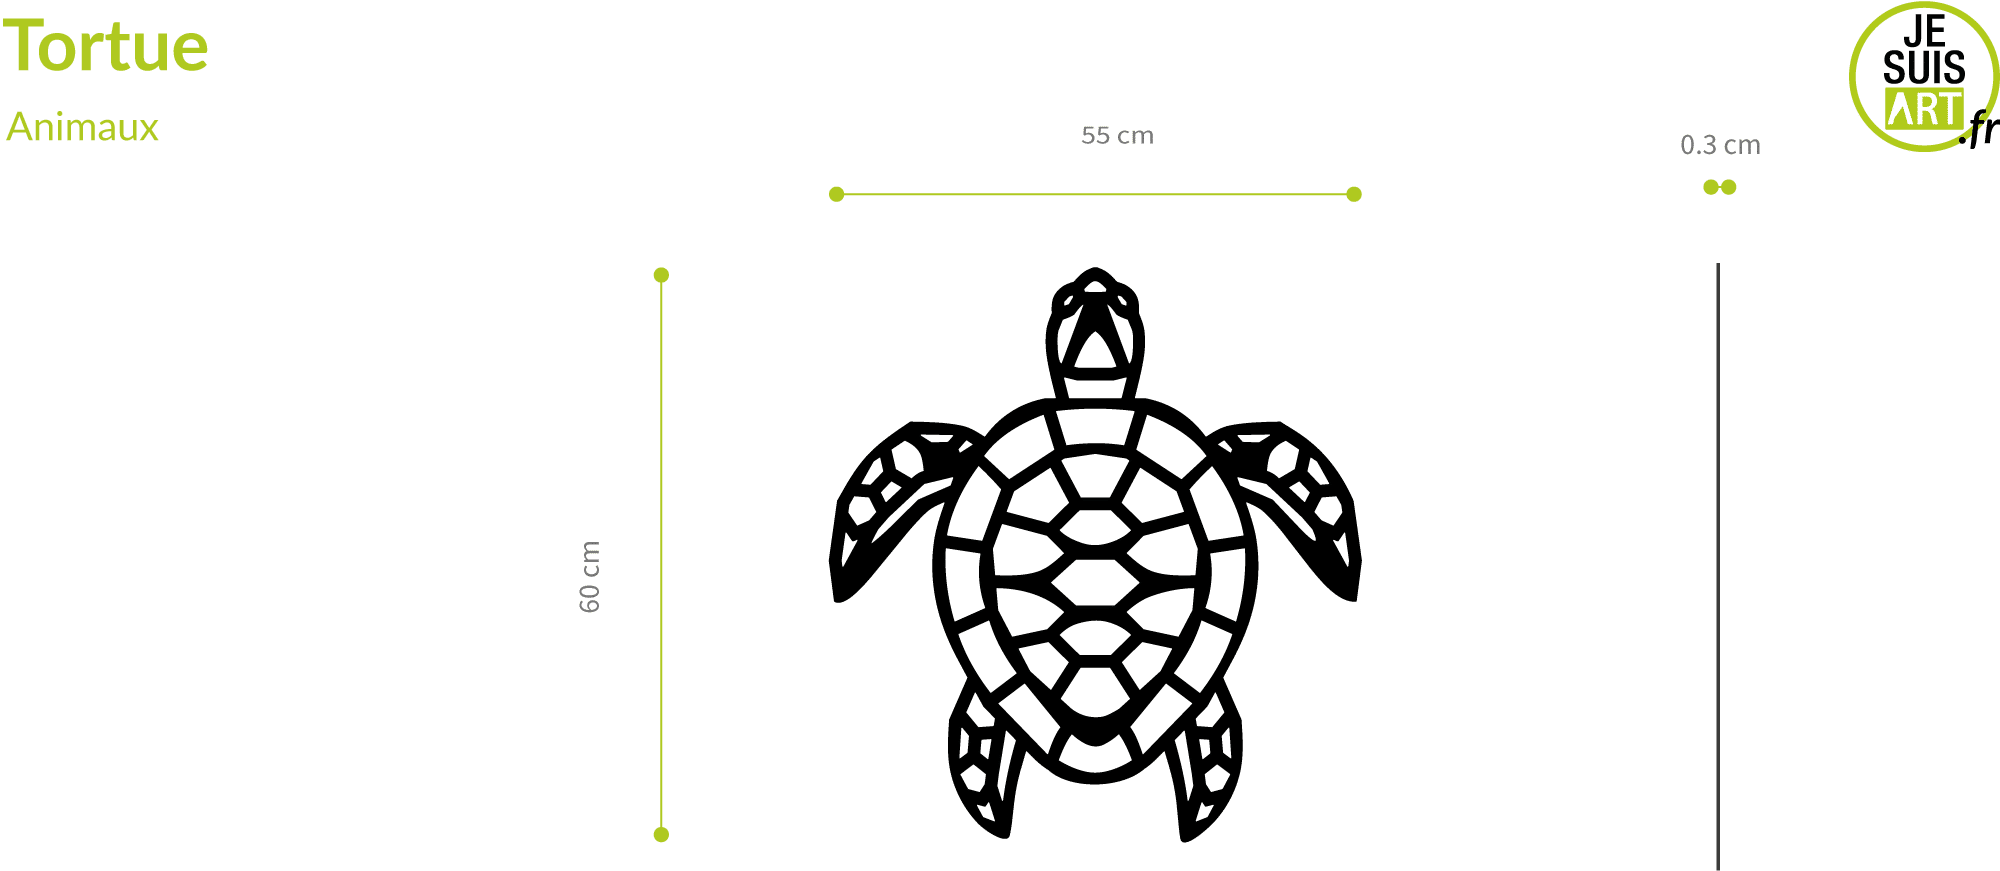 Tortue_sizes